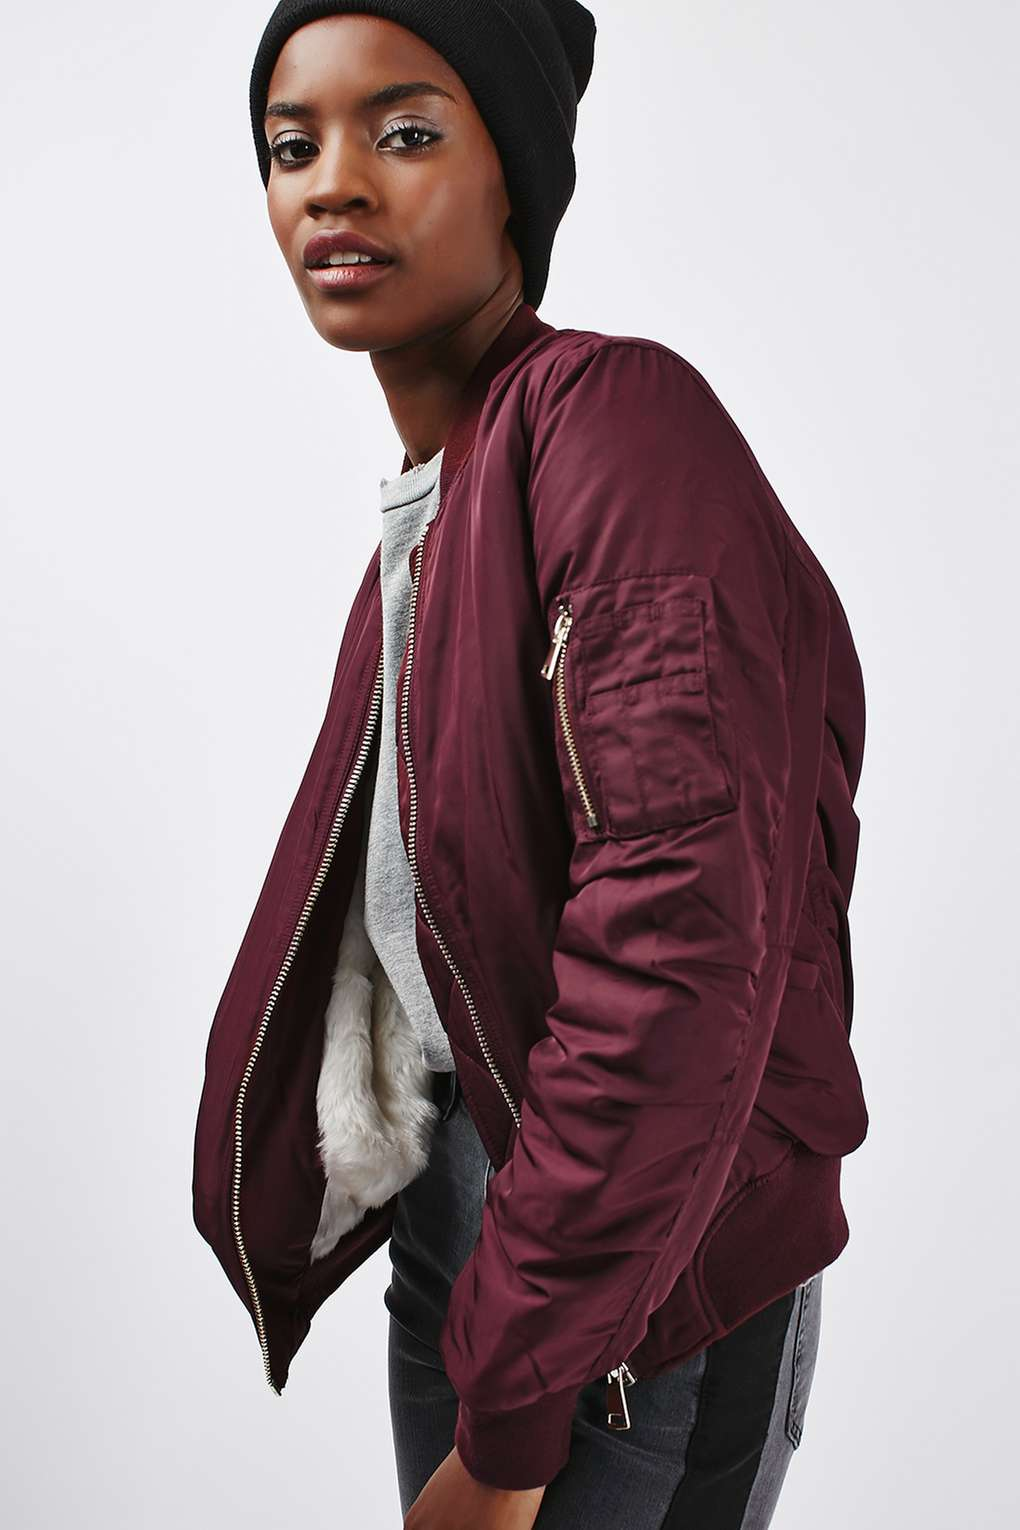 Topshop Lined Ma1 Bomber Jacket - 10 Seductive Burgundy Pieces for Fall